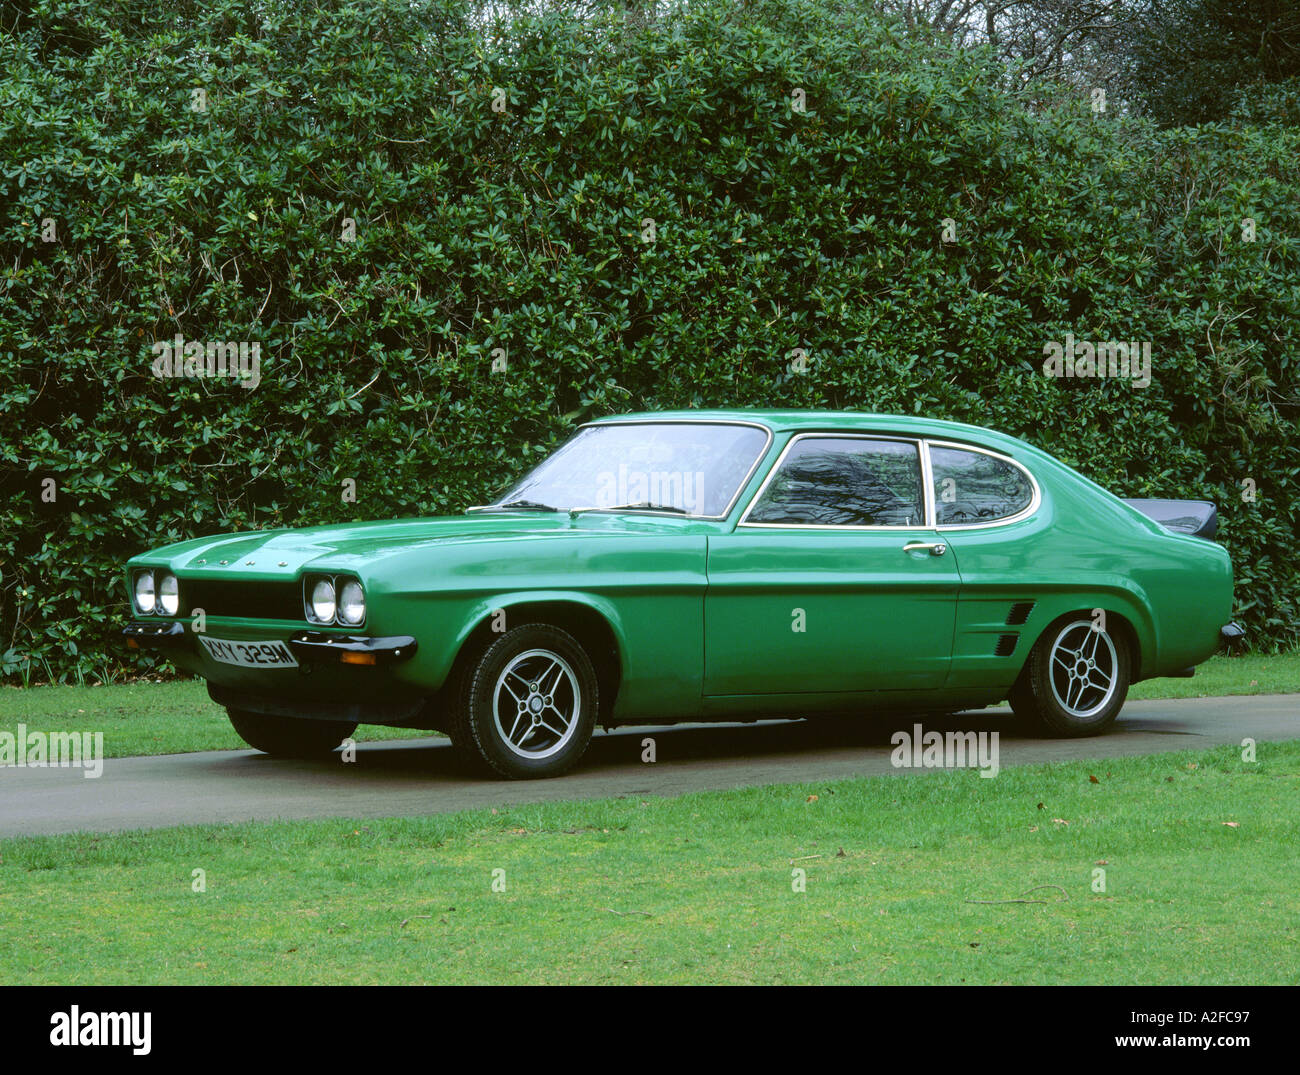 1974 ford capri rs 3100 stock photo royalty free image 195735 alamy. Black Bedroom Furniture Sets. Home Design Ideas